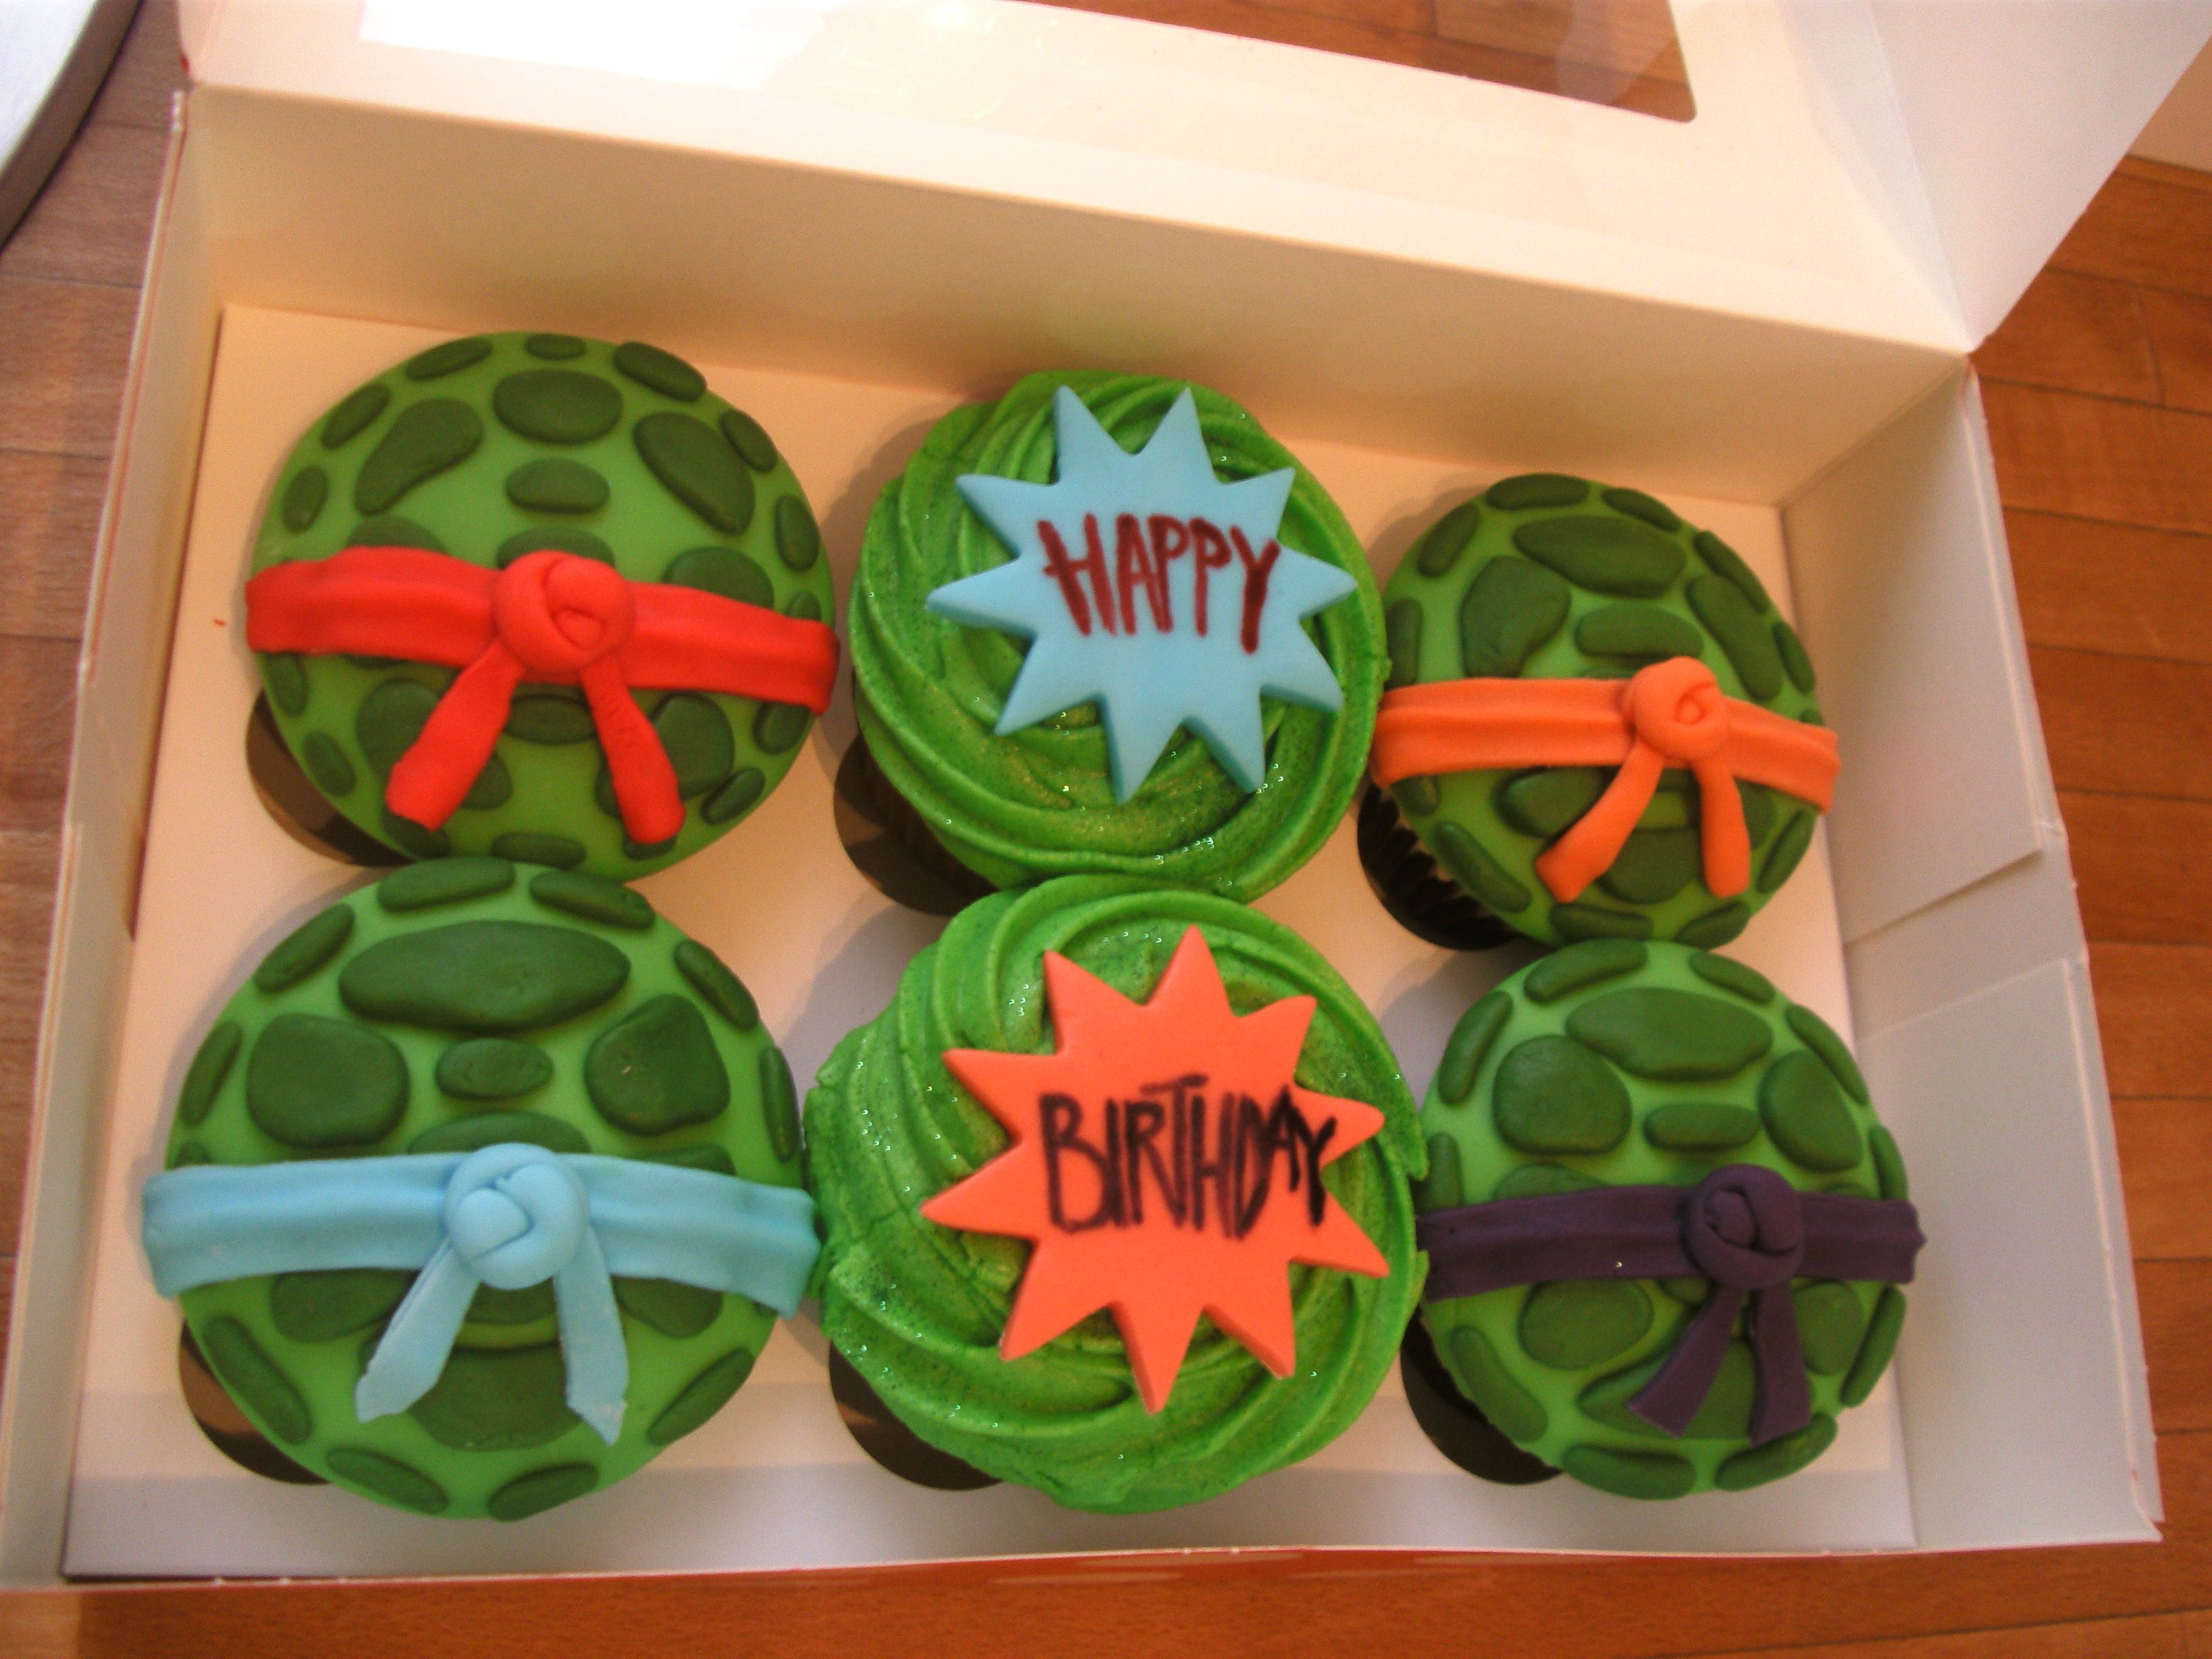 Google Image Result for http://www.deviantart.com/download/271021851/ninja_turtles_cup_cakes_by_gertygetsgangster-d4hcxsr.jpg